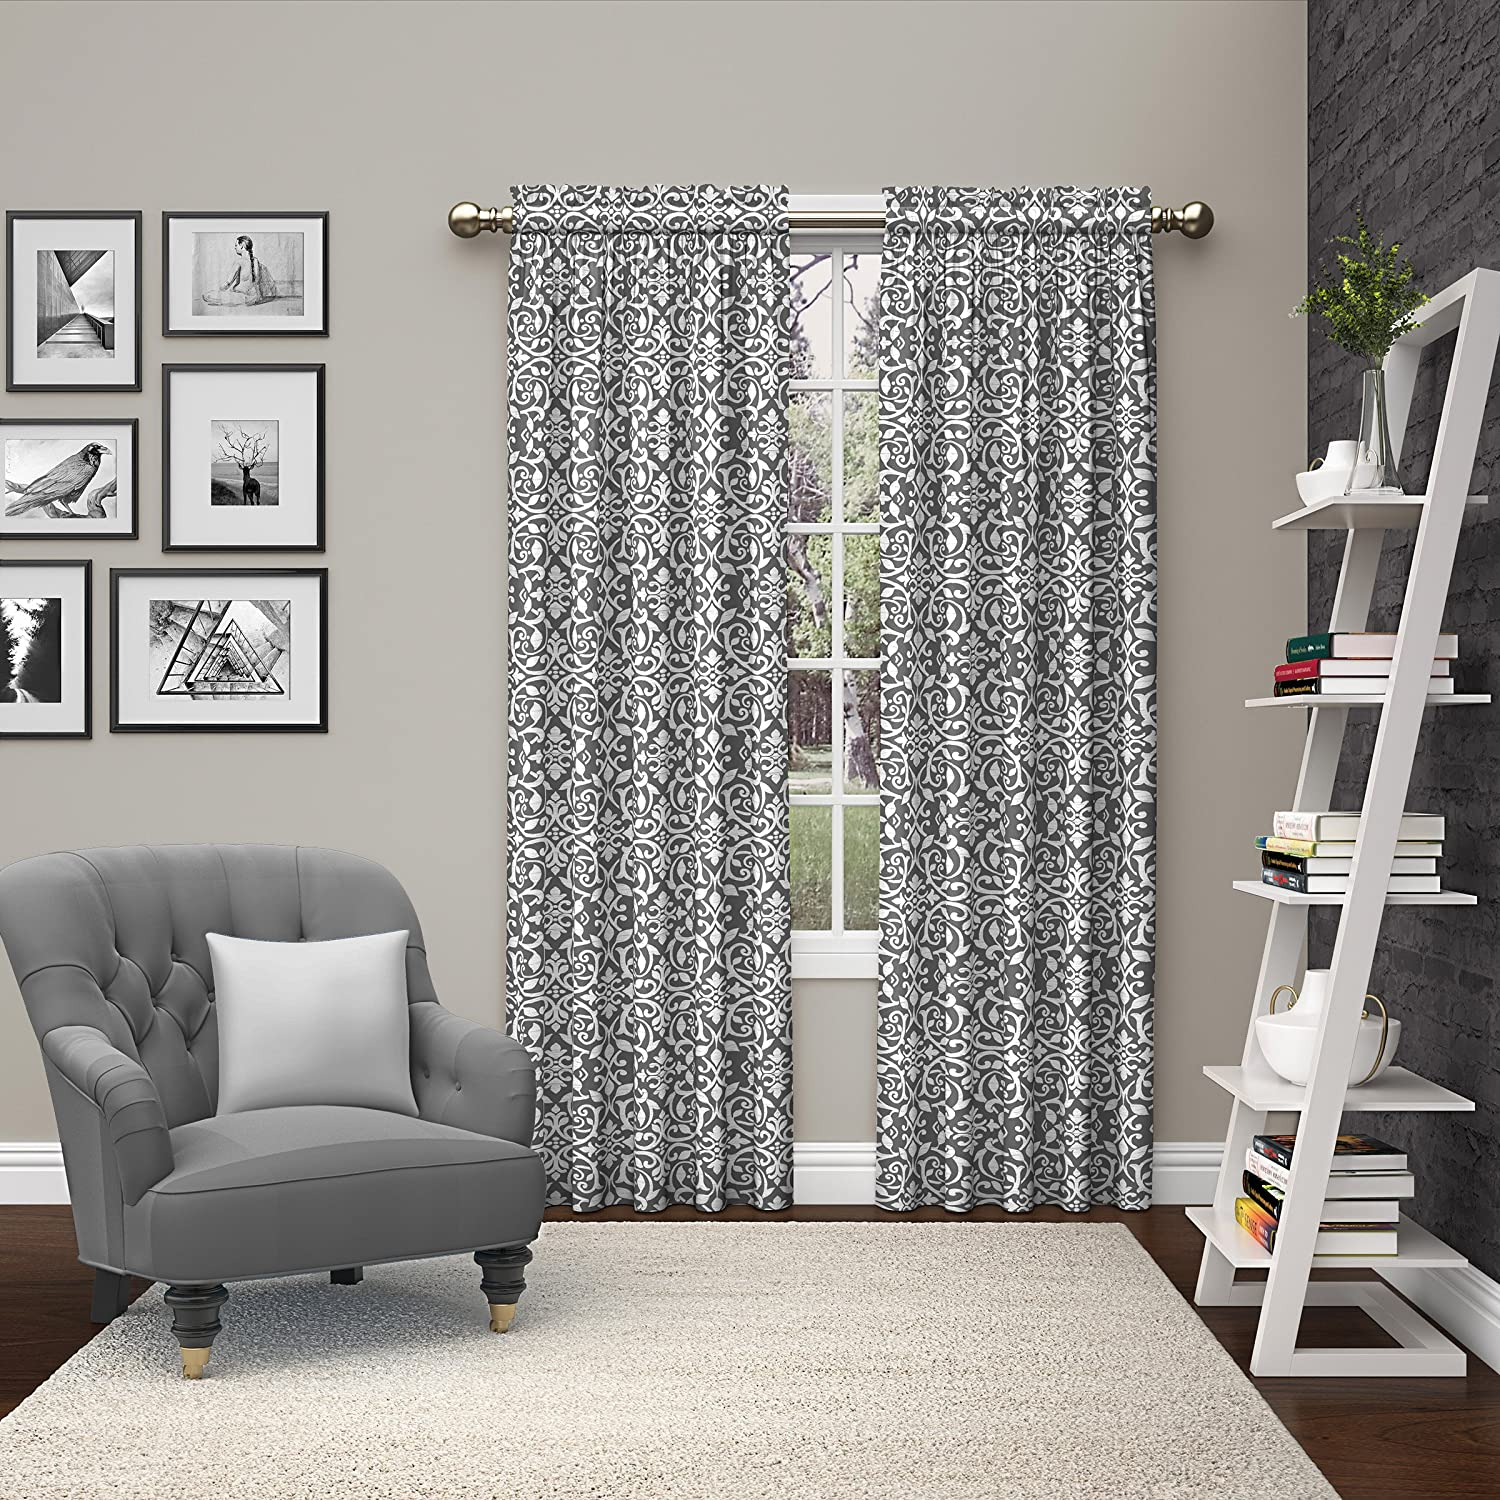 Pairs to Go Eclipse 15614056X063YEL Pinkney Window Curtains (2 Pack), 56 x 63, Yellow 56 x 63 Ellery Homestyles